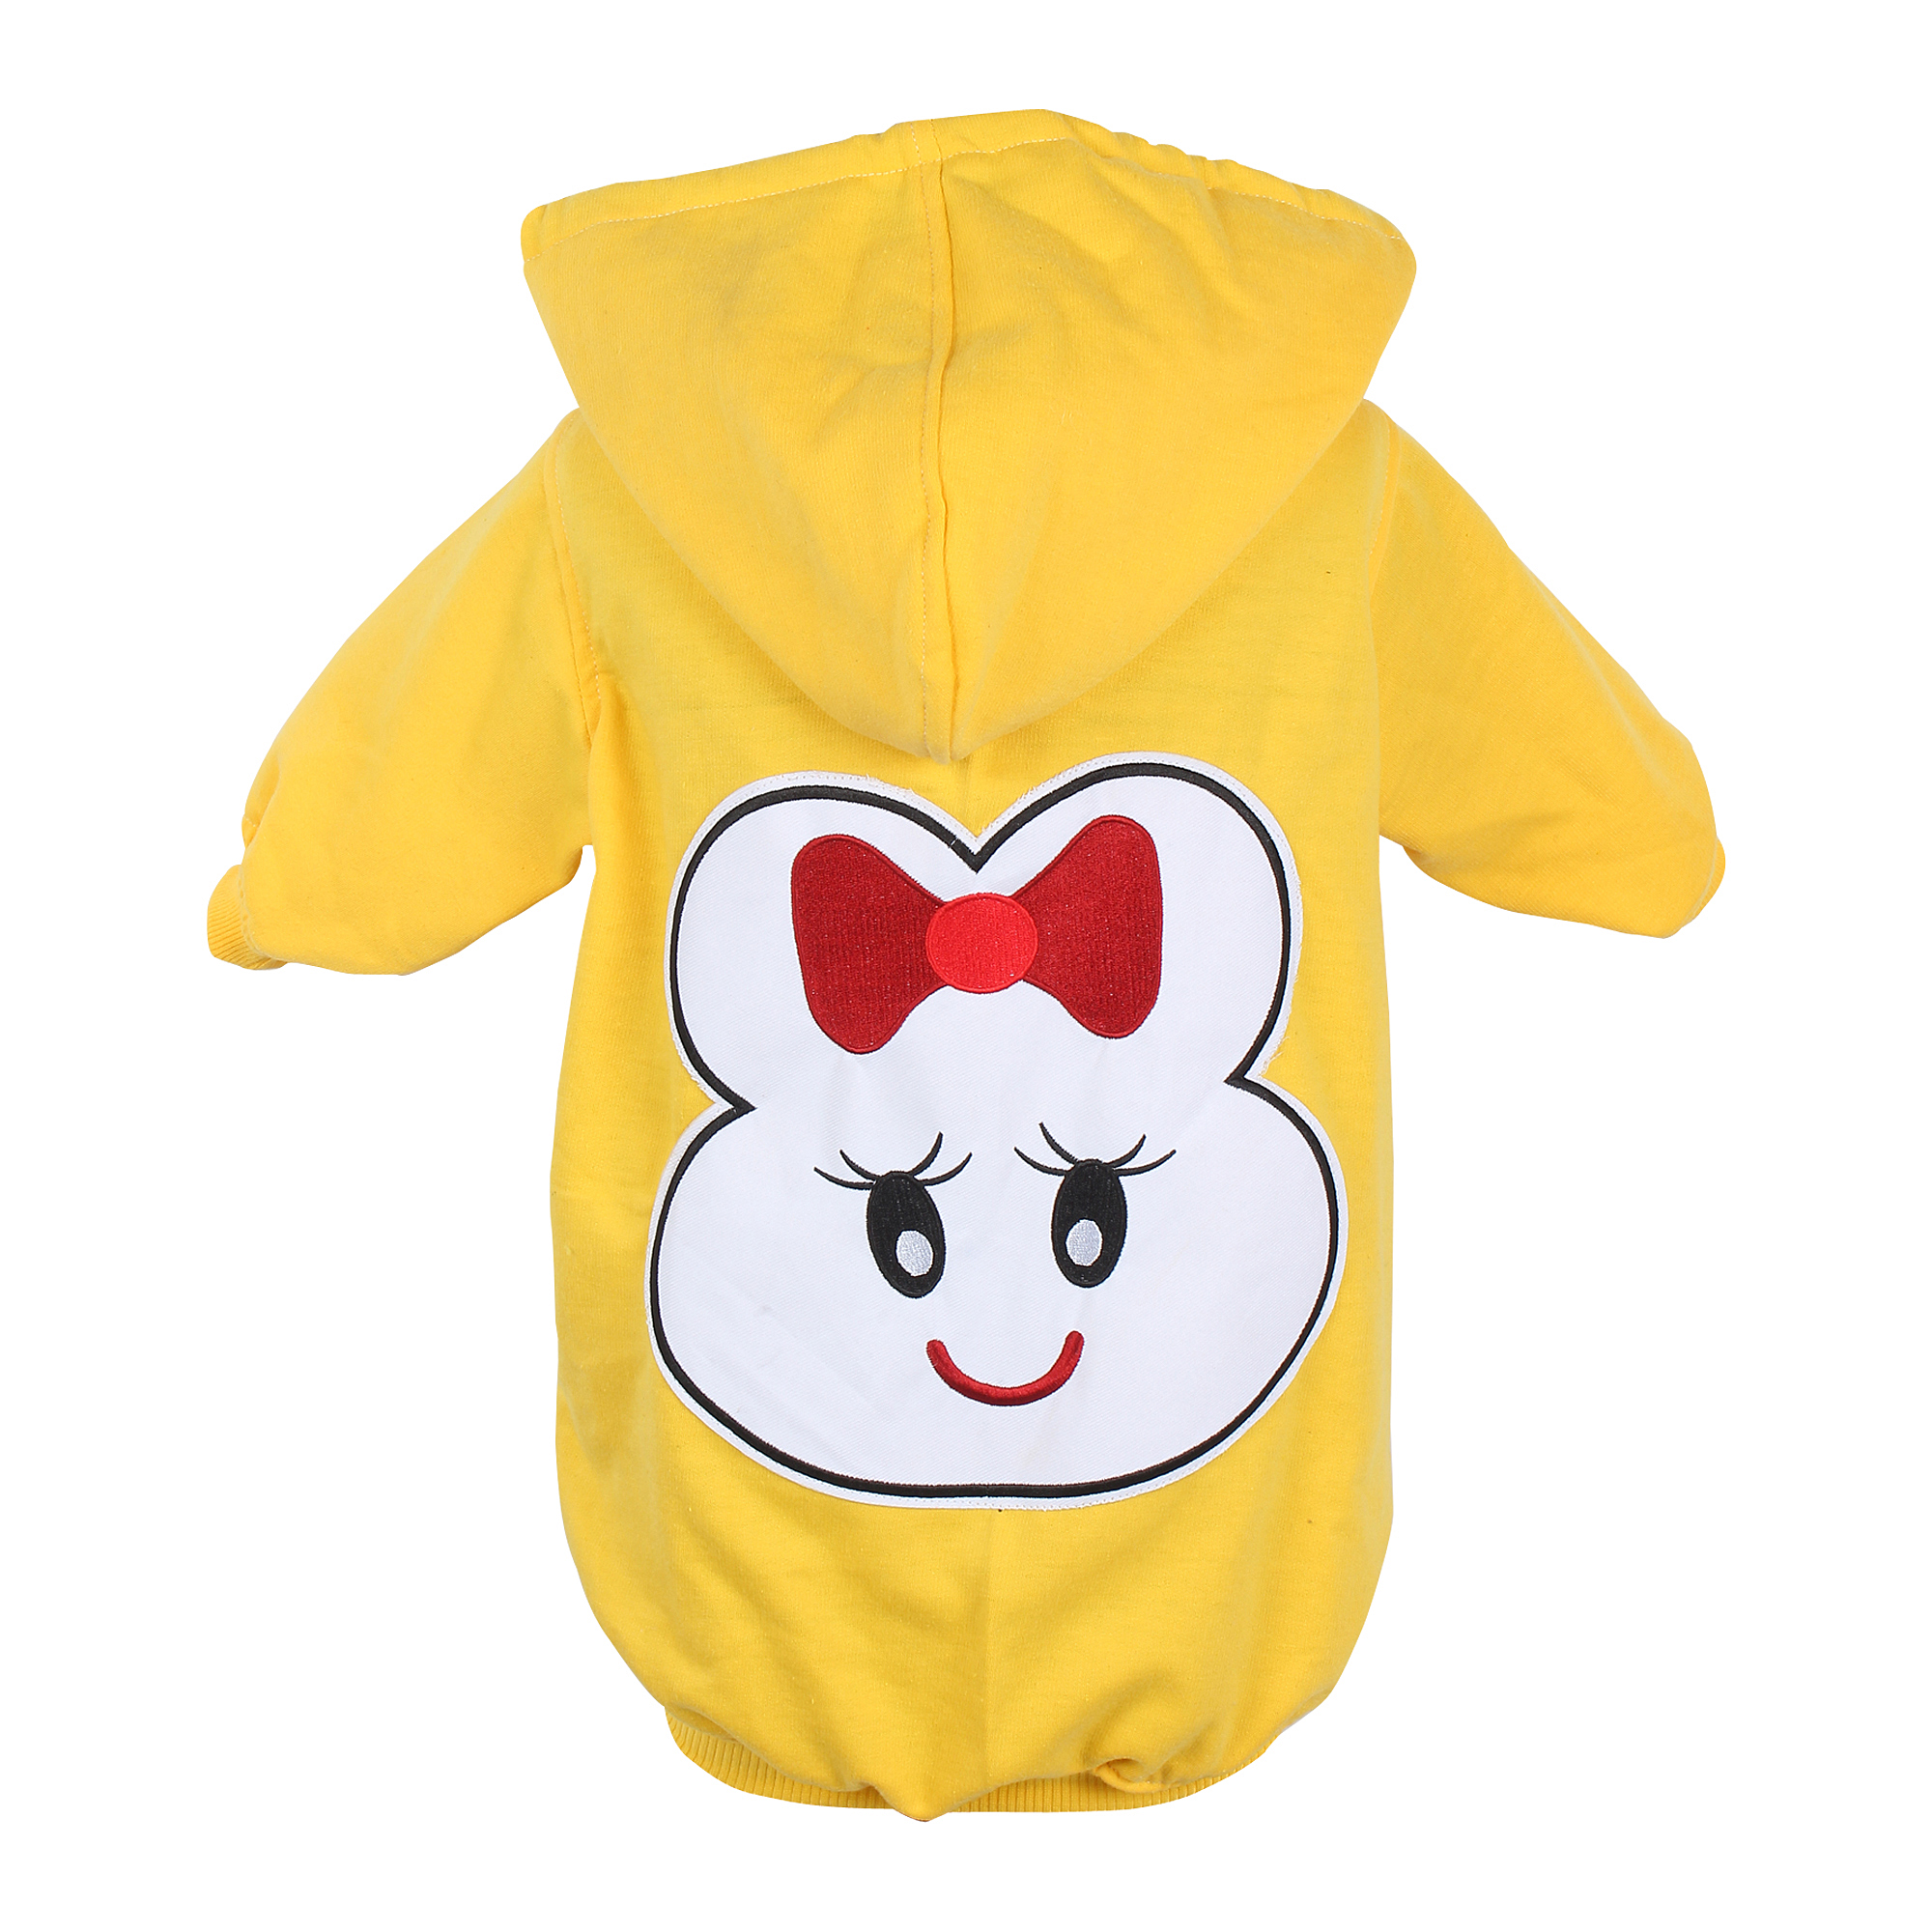 DOUGE COUTURE WINTER STYLISH PATCH HOODIE YELLOW TEES